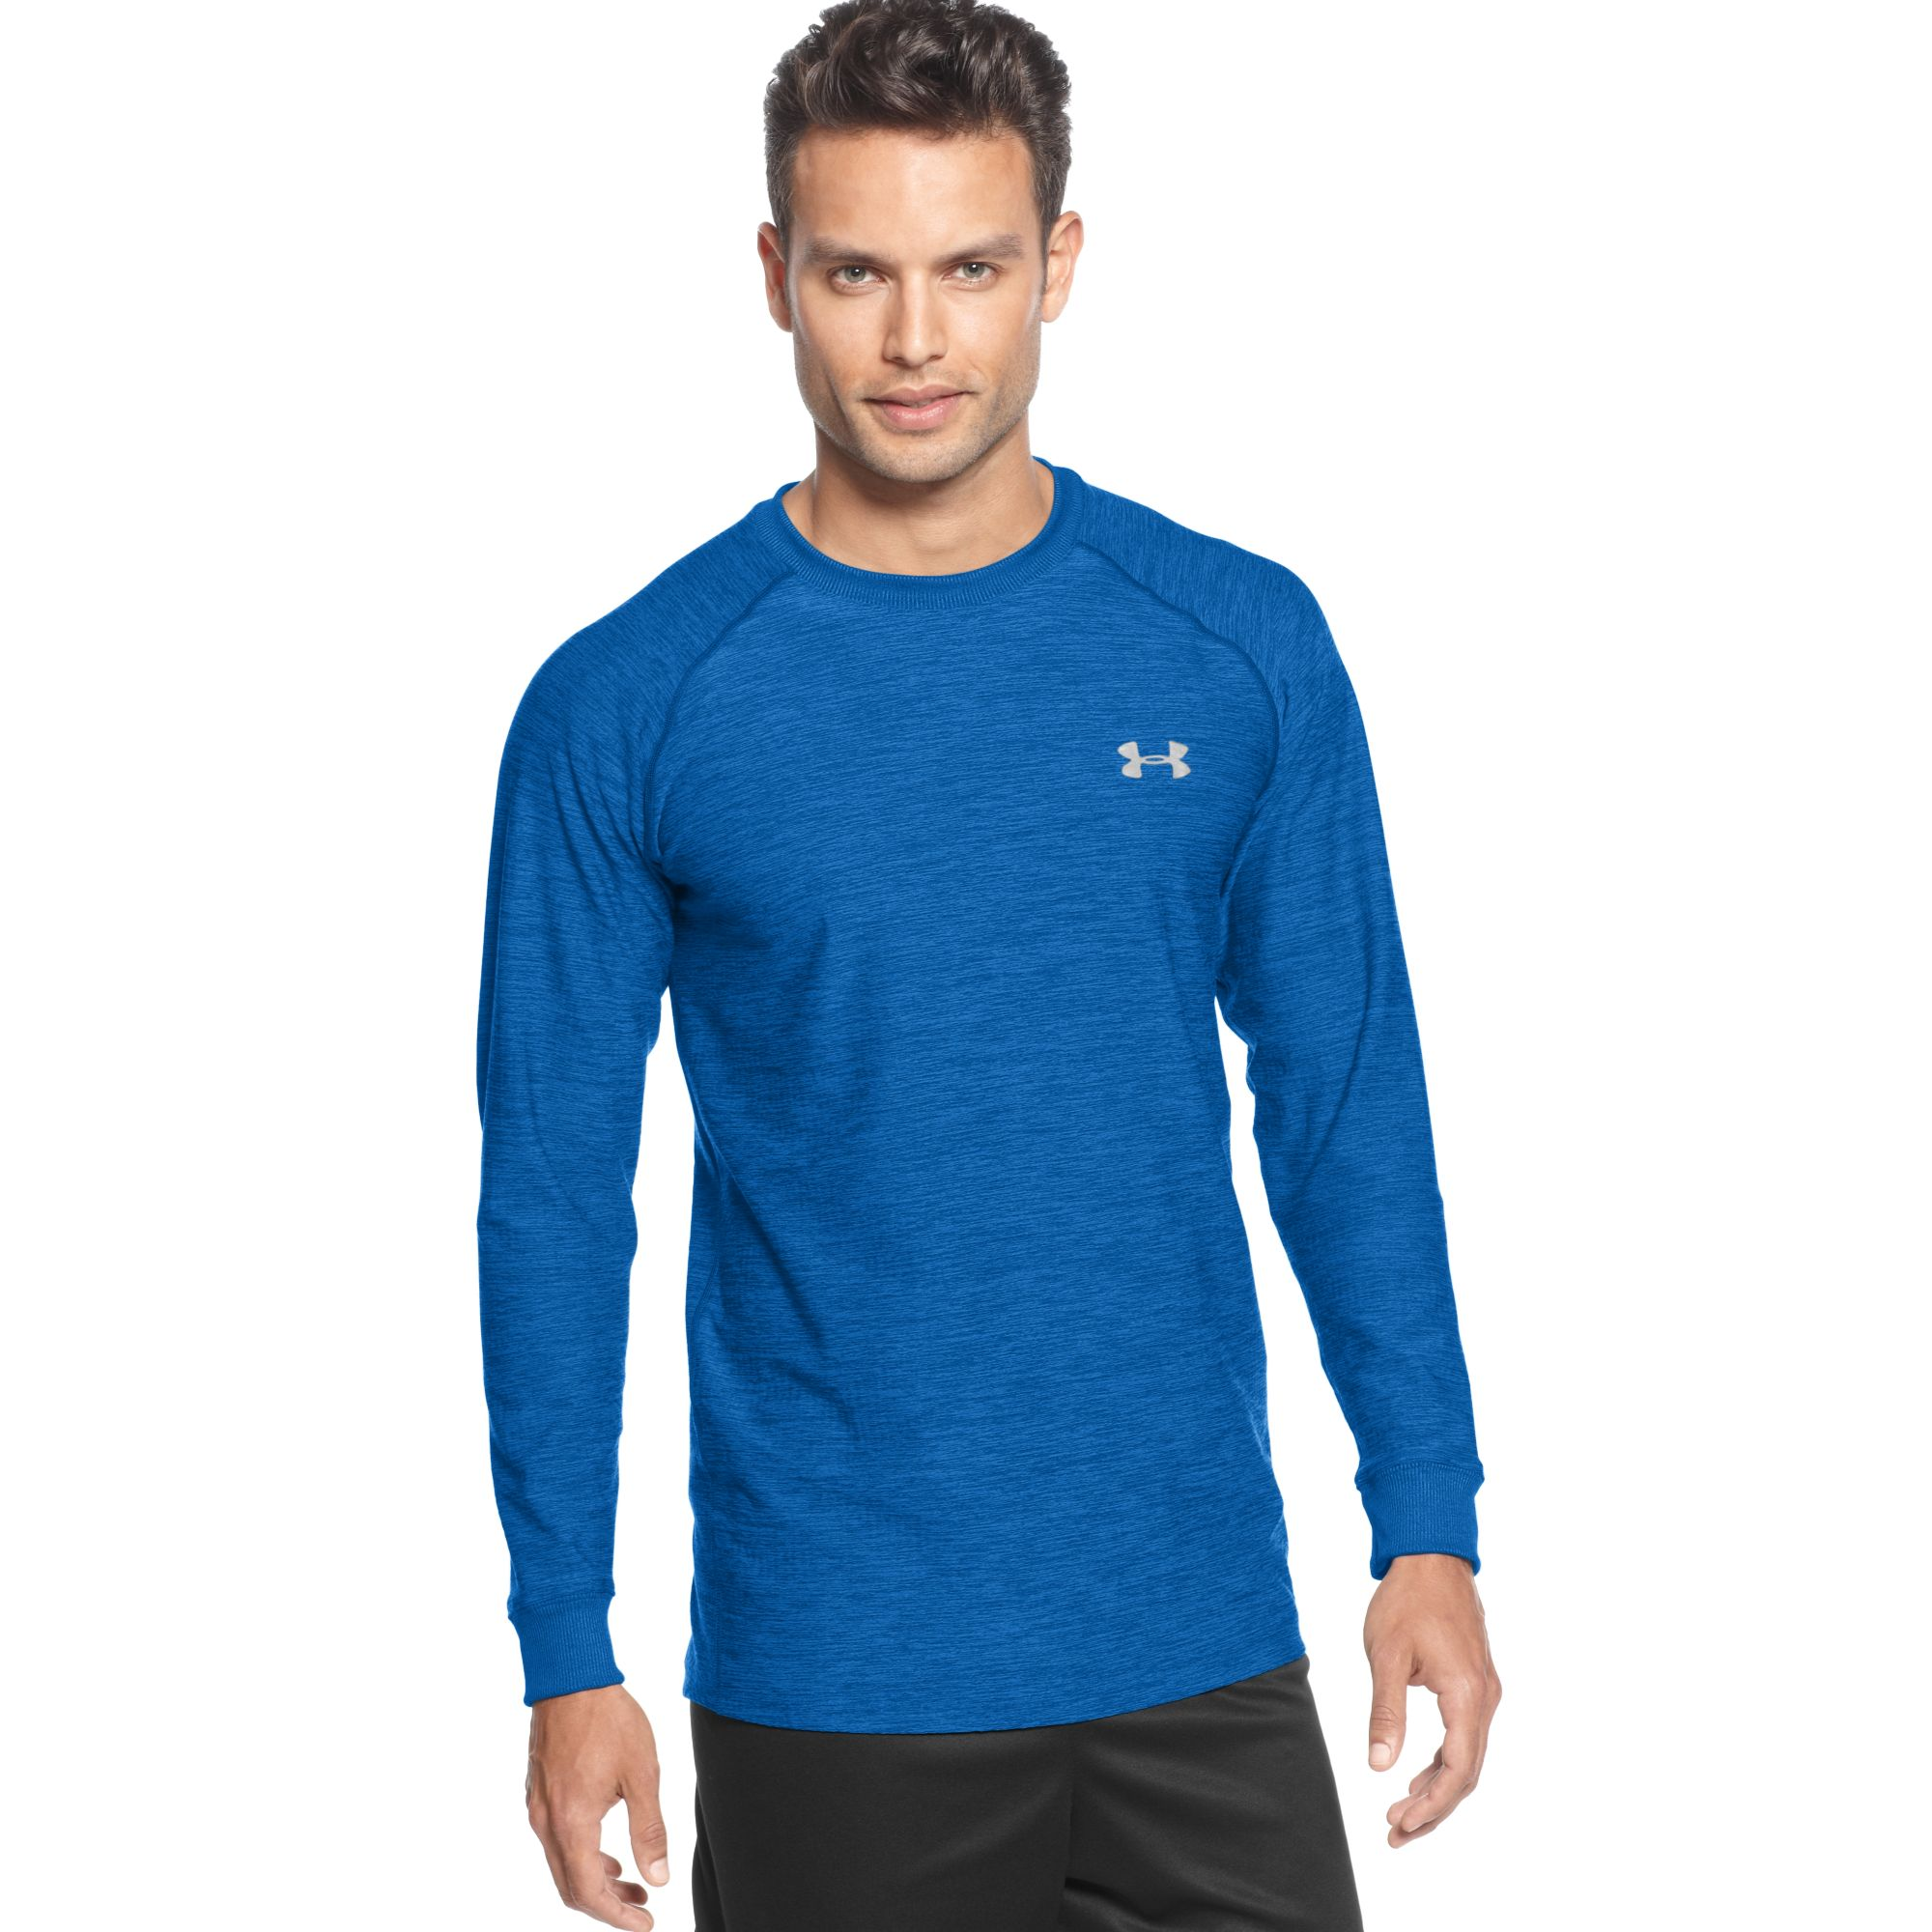 Under armour cold gear infrared longsleeve tshirt in blue for Under armour cold gear shirt mens